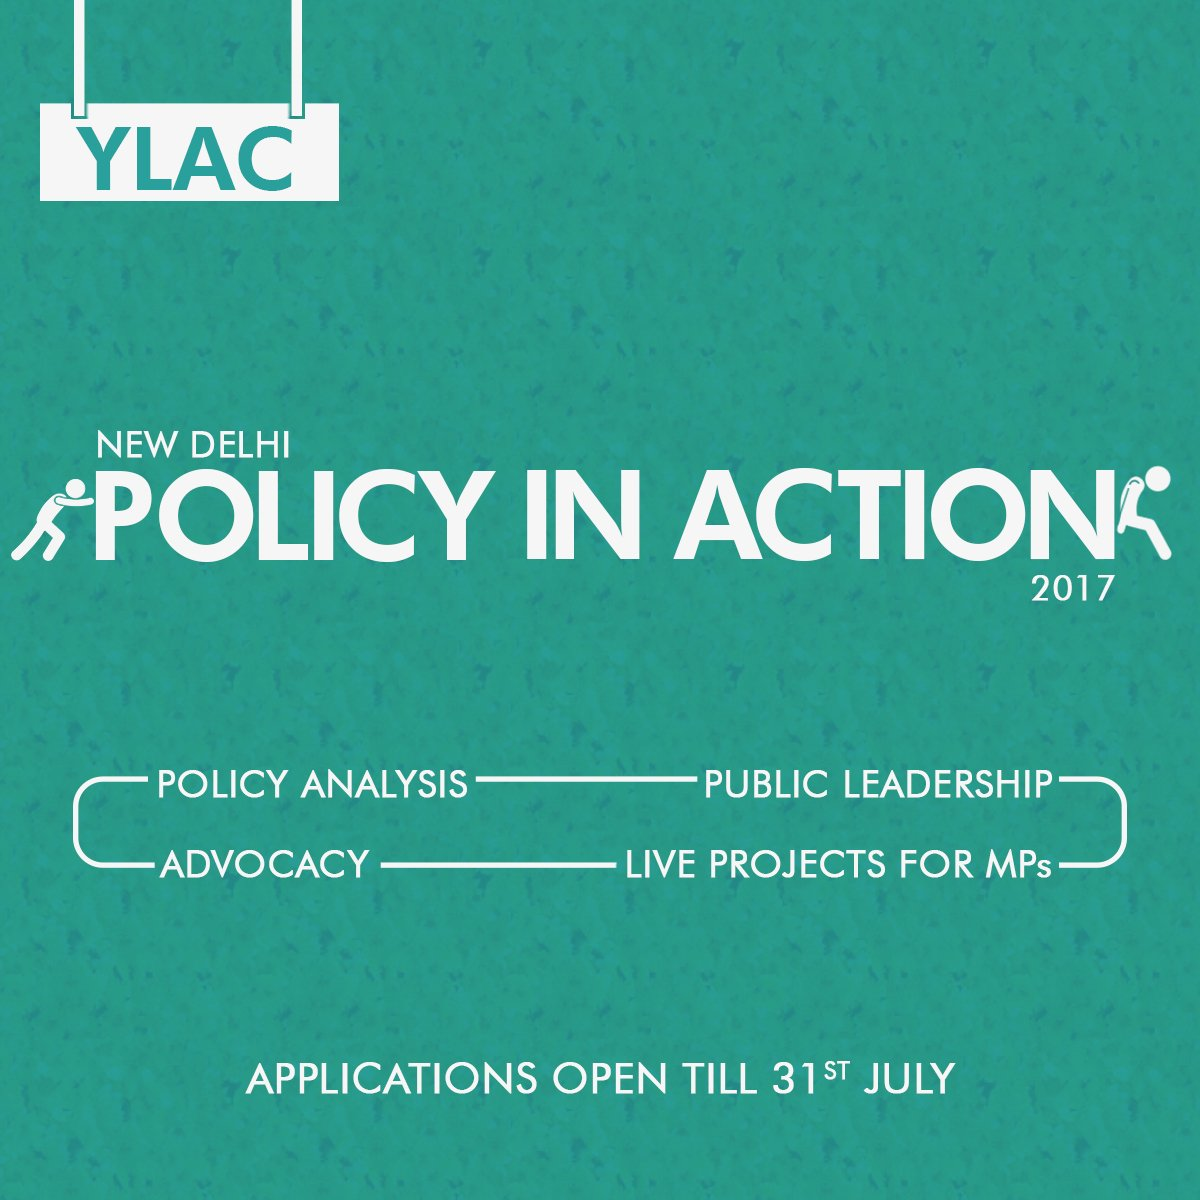 YLAC India's Policy in Action Program: Work with MPs [Aug 12 – Sept 10, New Delhi]: Apply by July 31